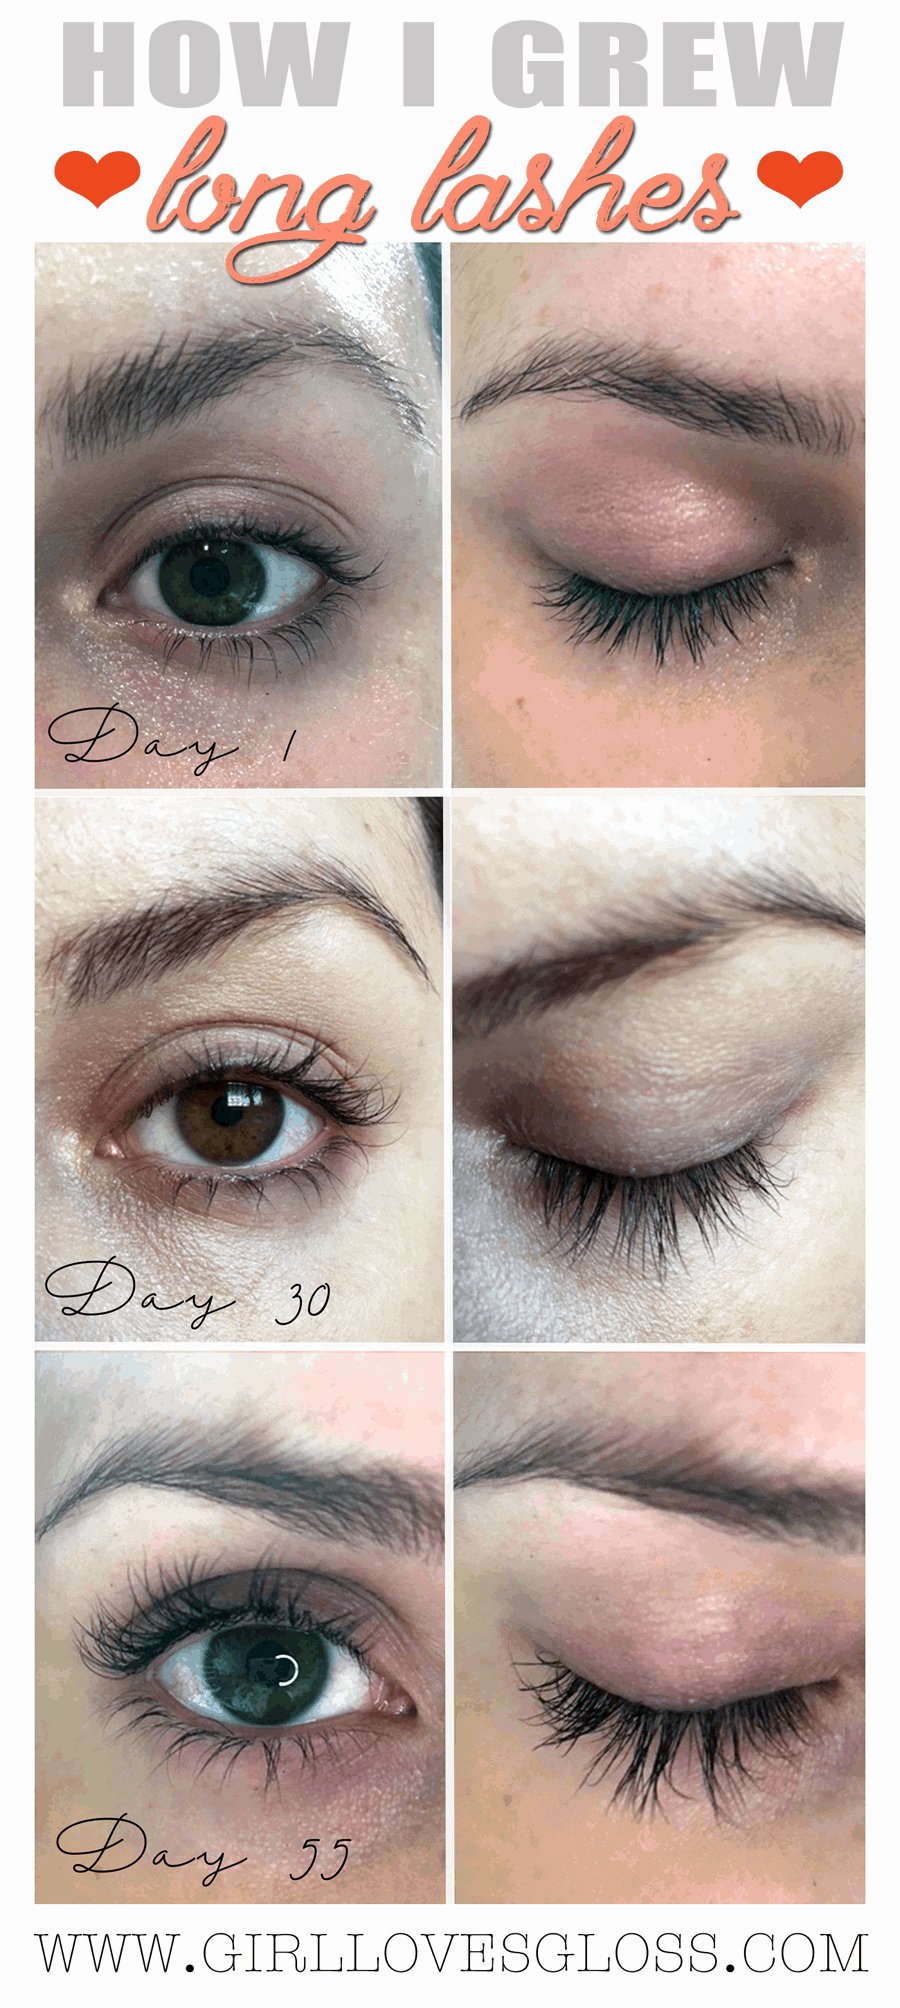 How to Grow Long Lashes